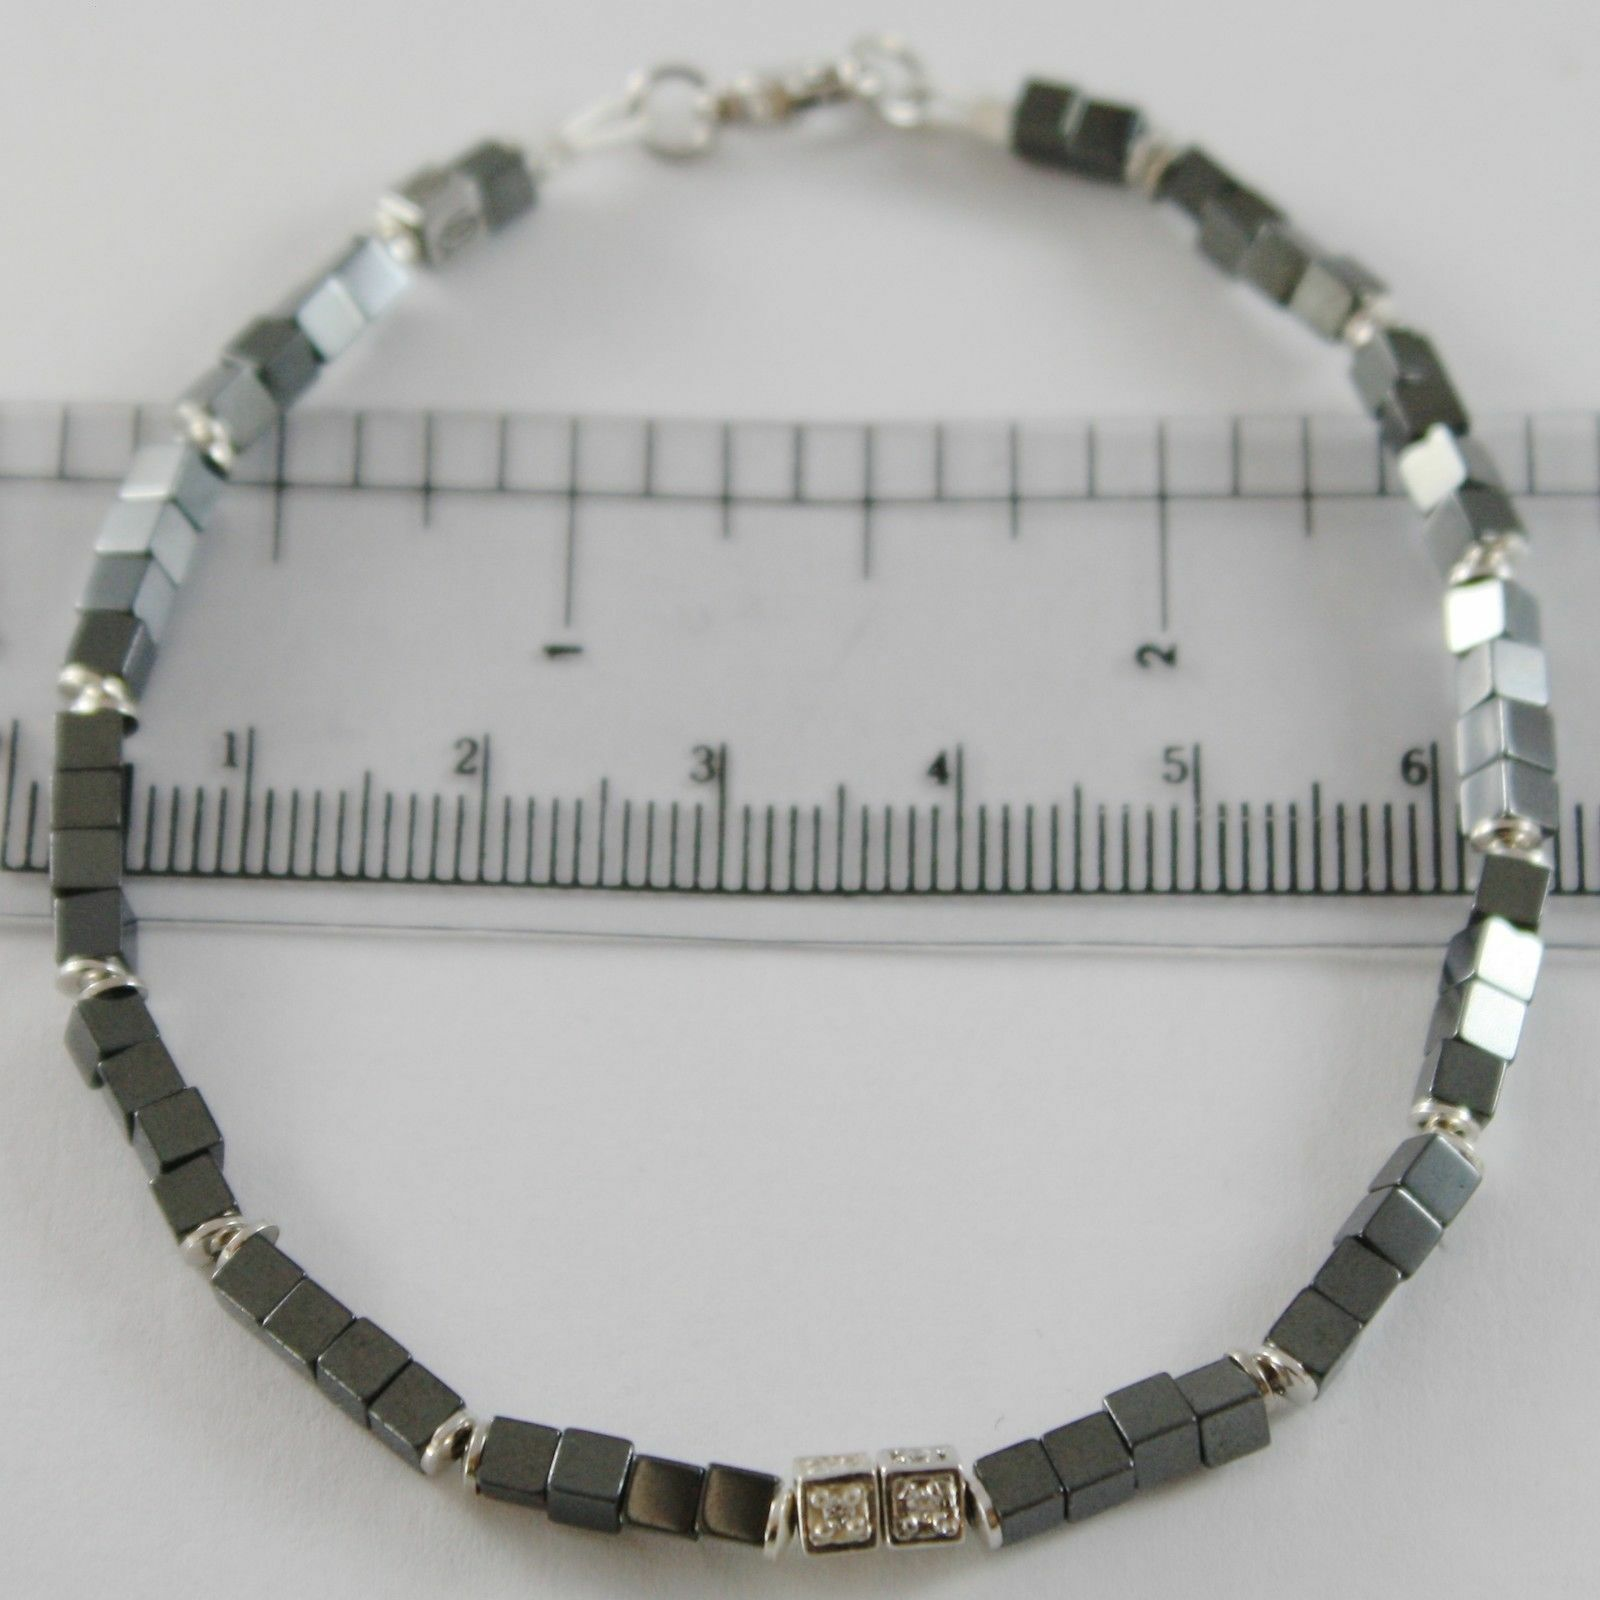 Bracelet Giadan Silver 925 Hematite Glossy and Diamonds White Made in Italy -